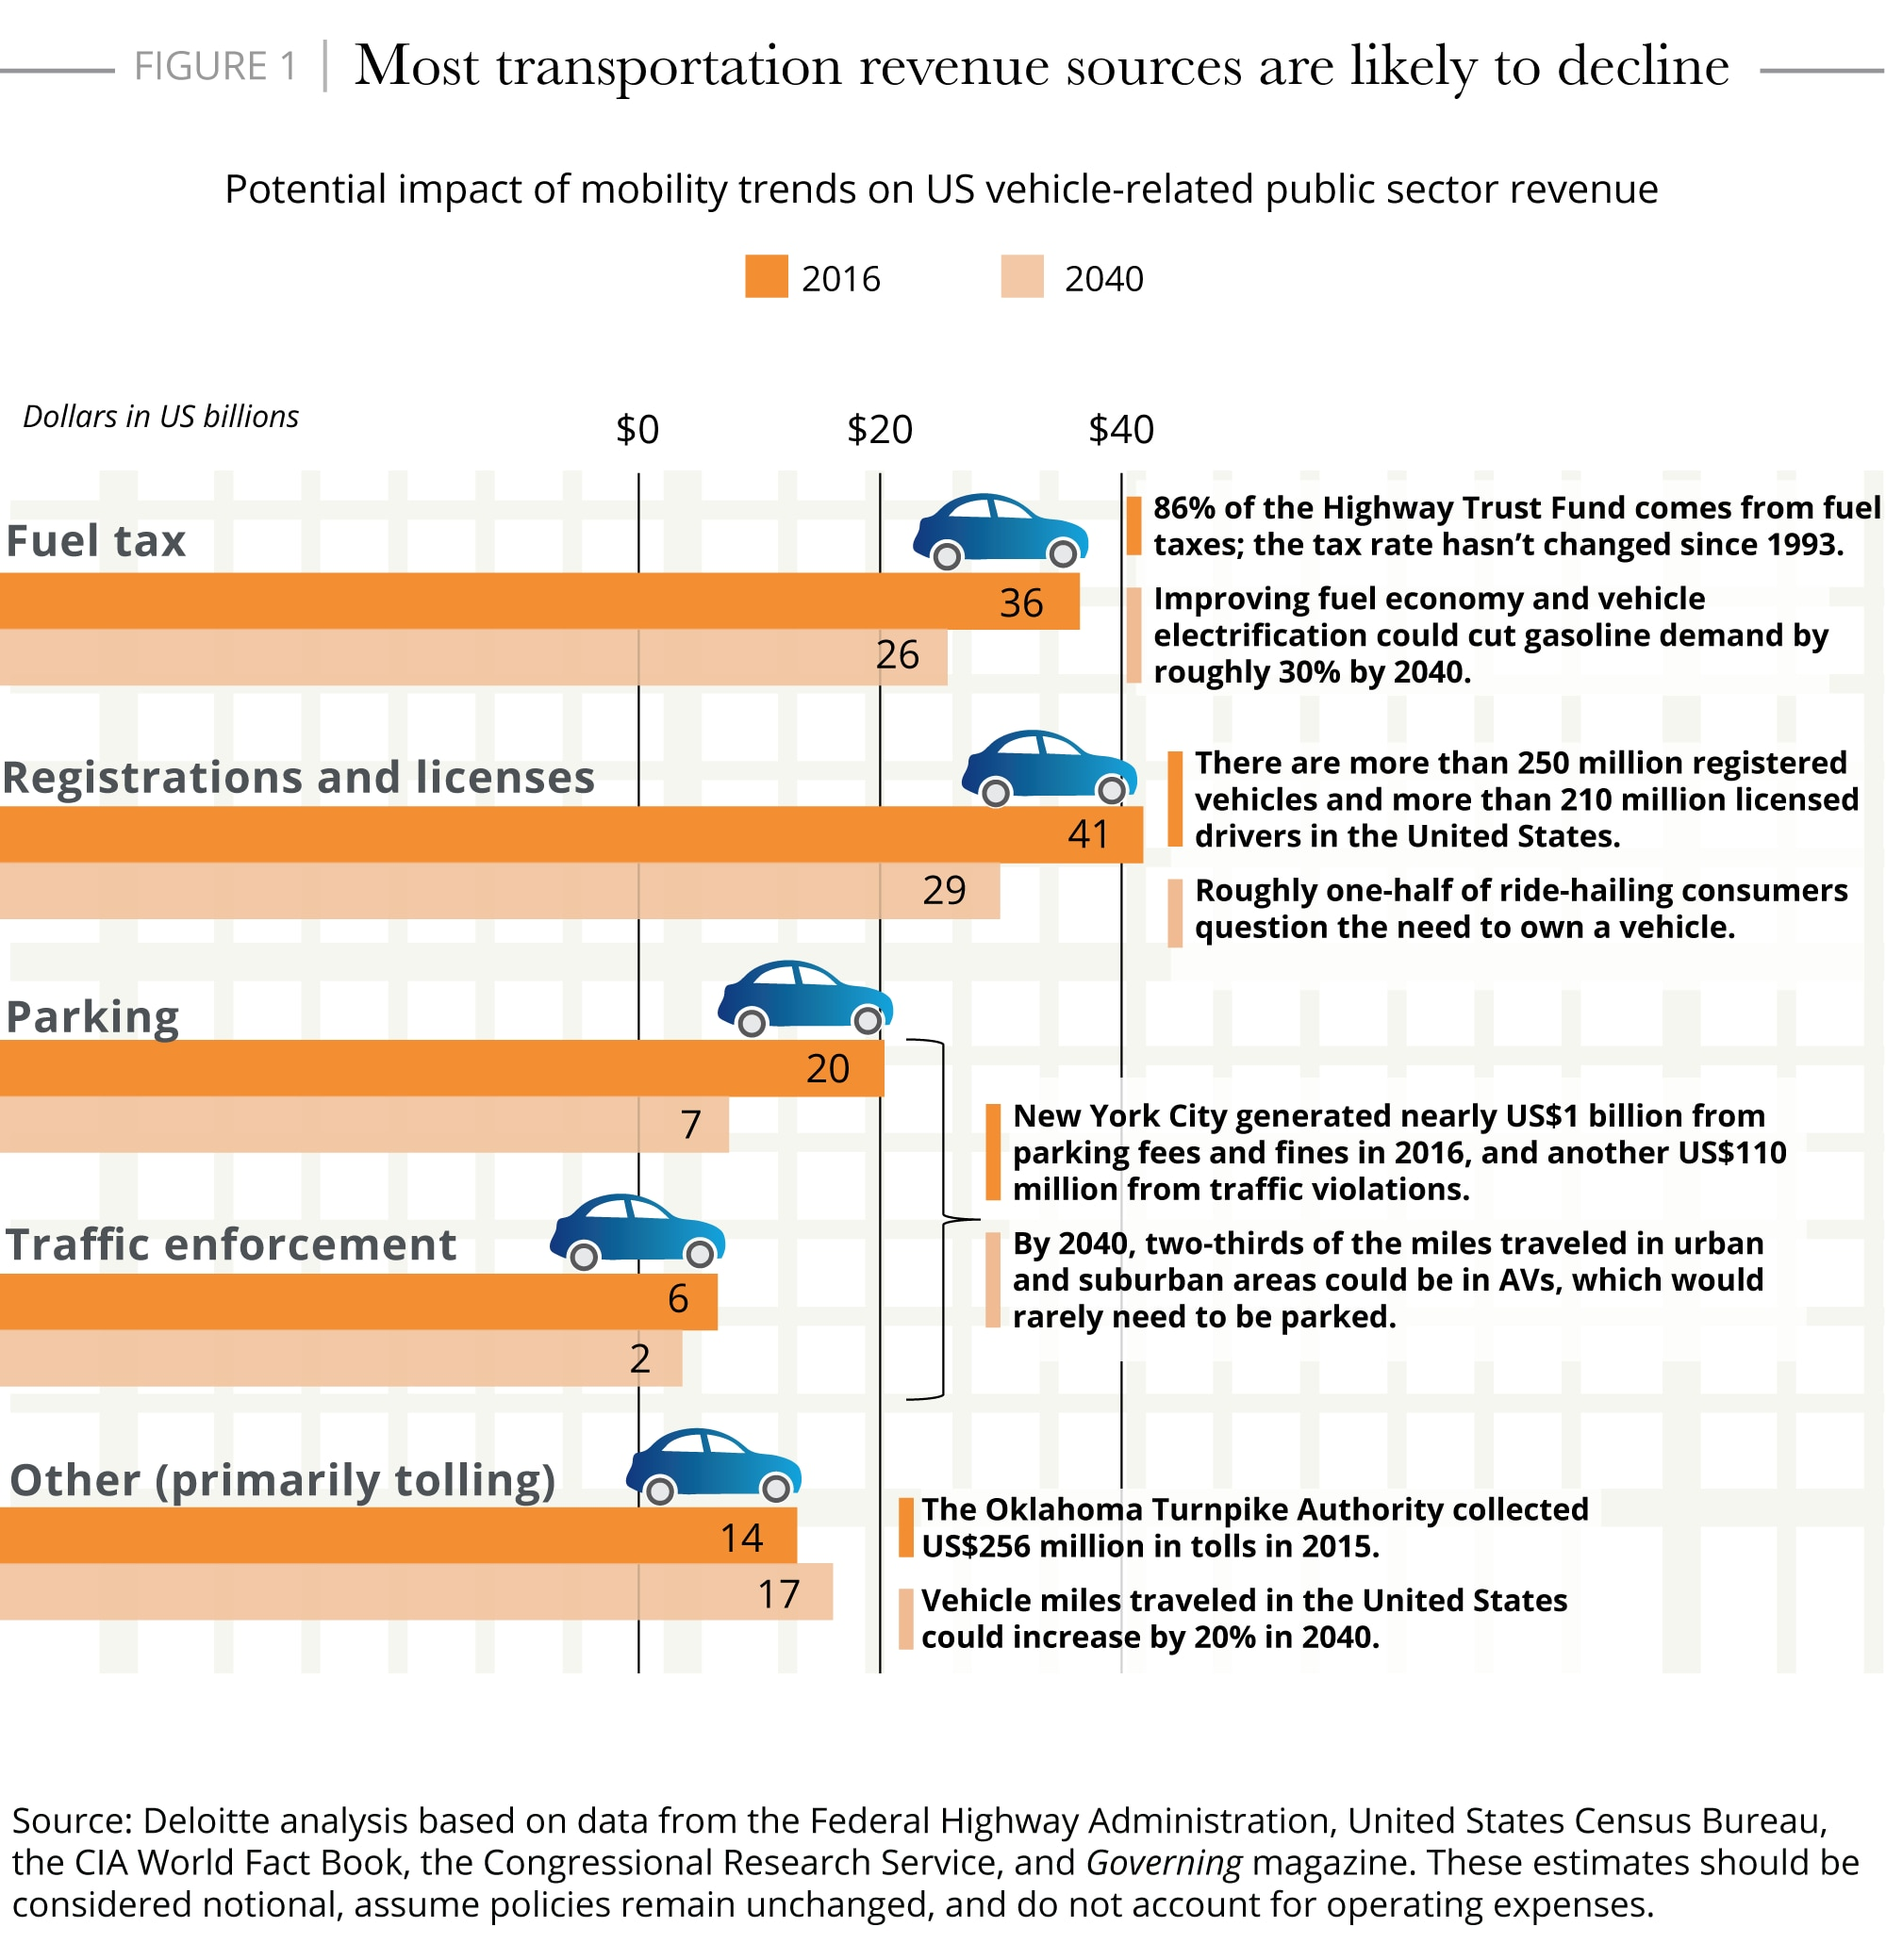 Most transportation revenue sources are likely to decline